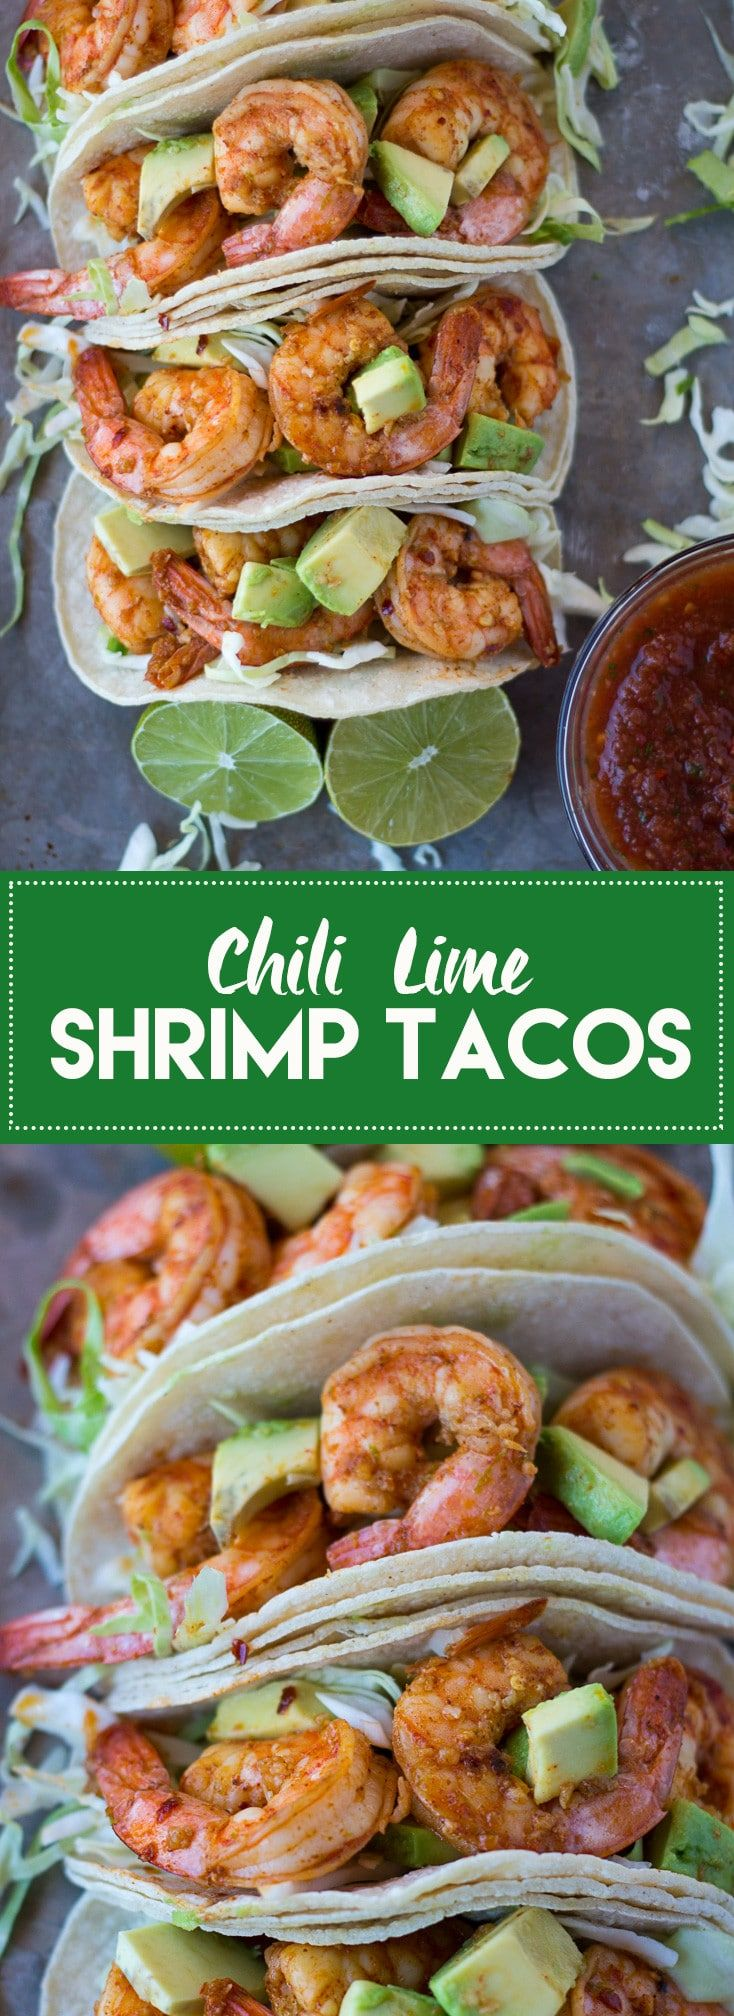 Chili Lime Shrimp Tacos images